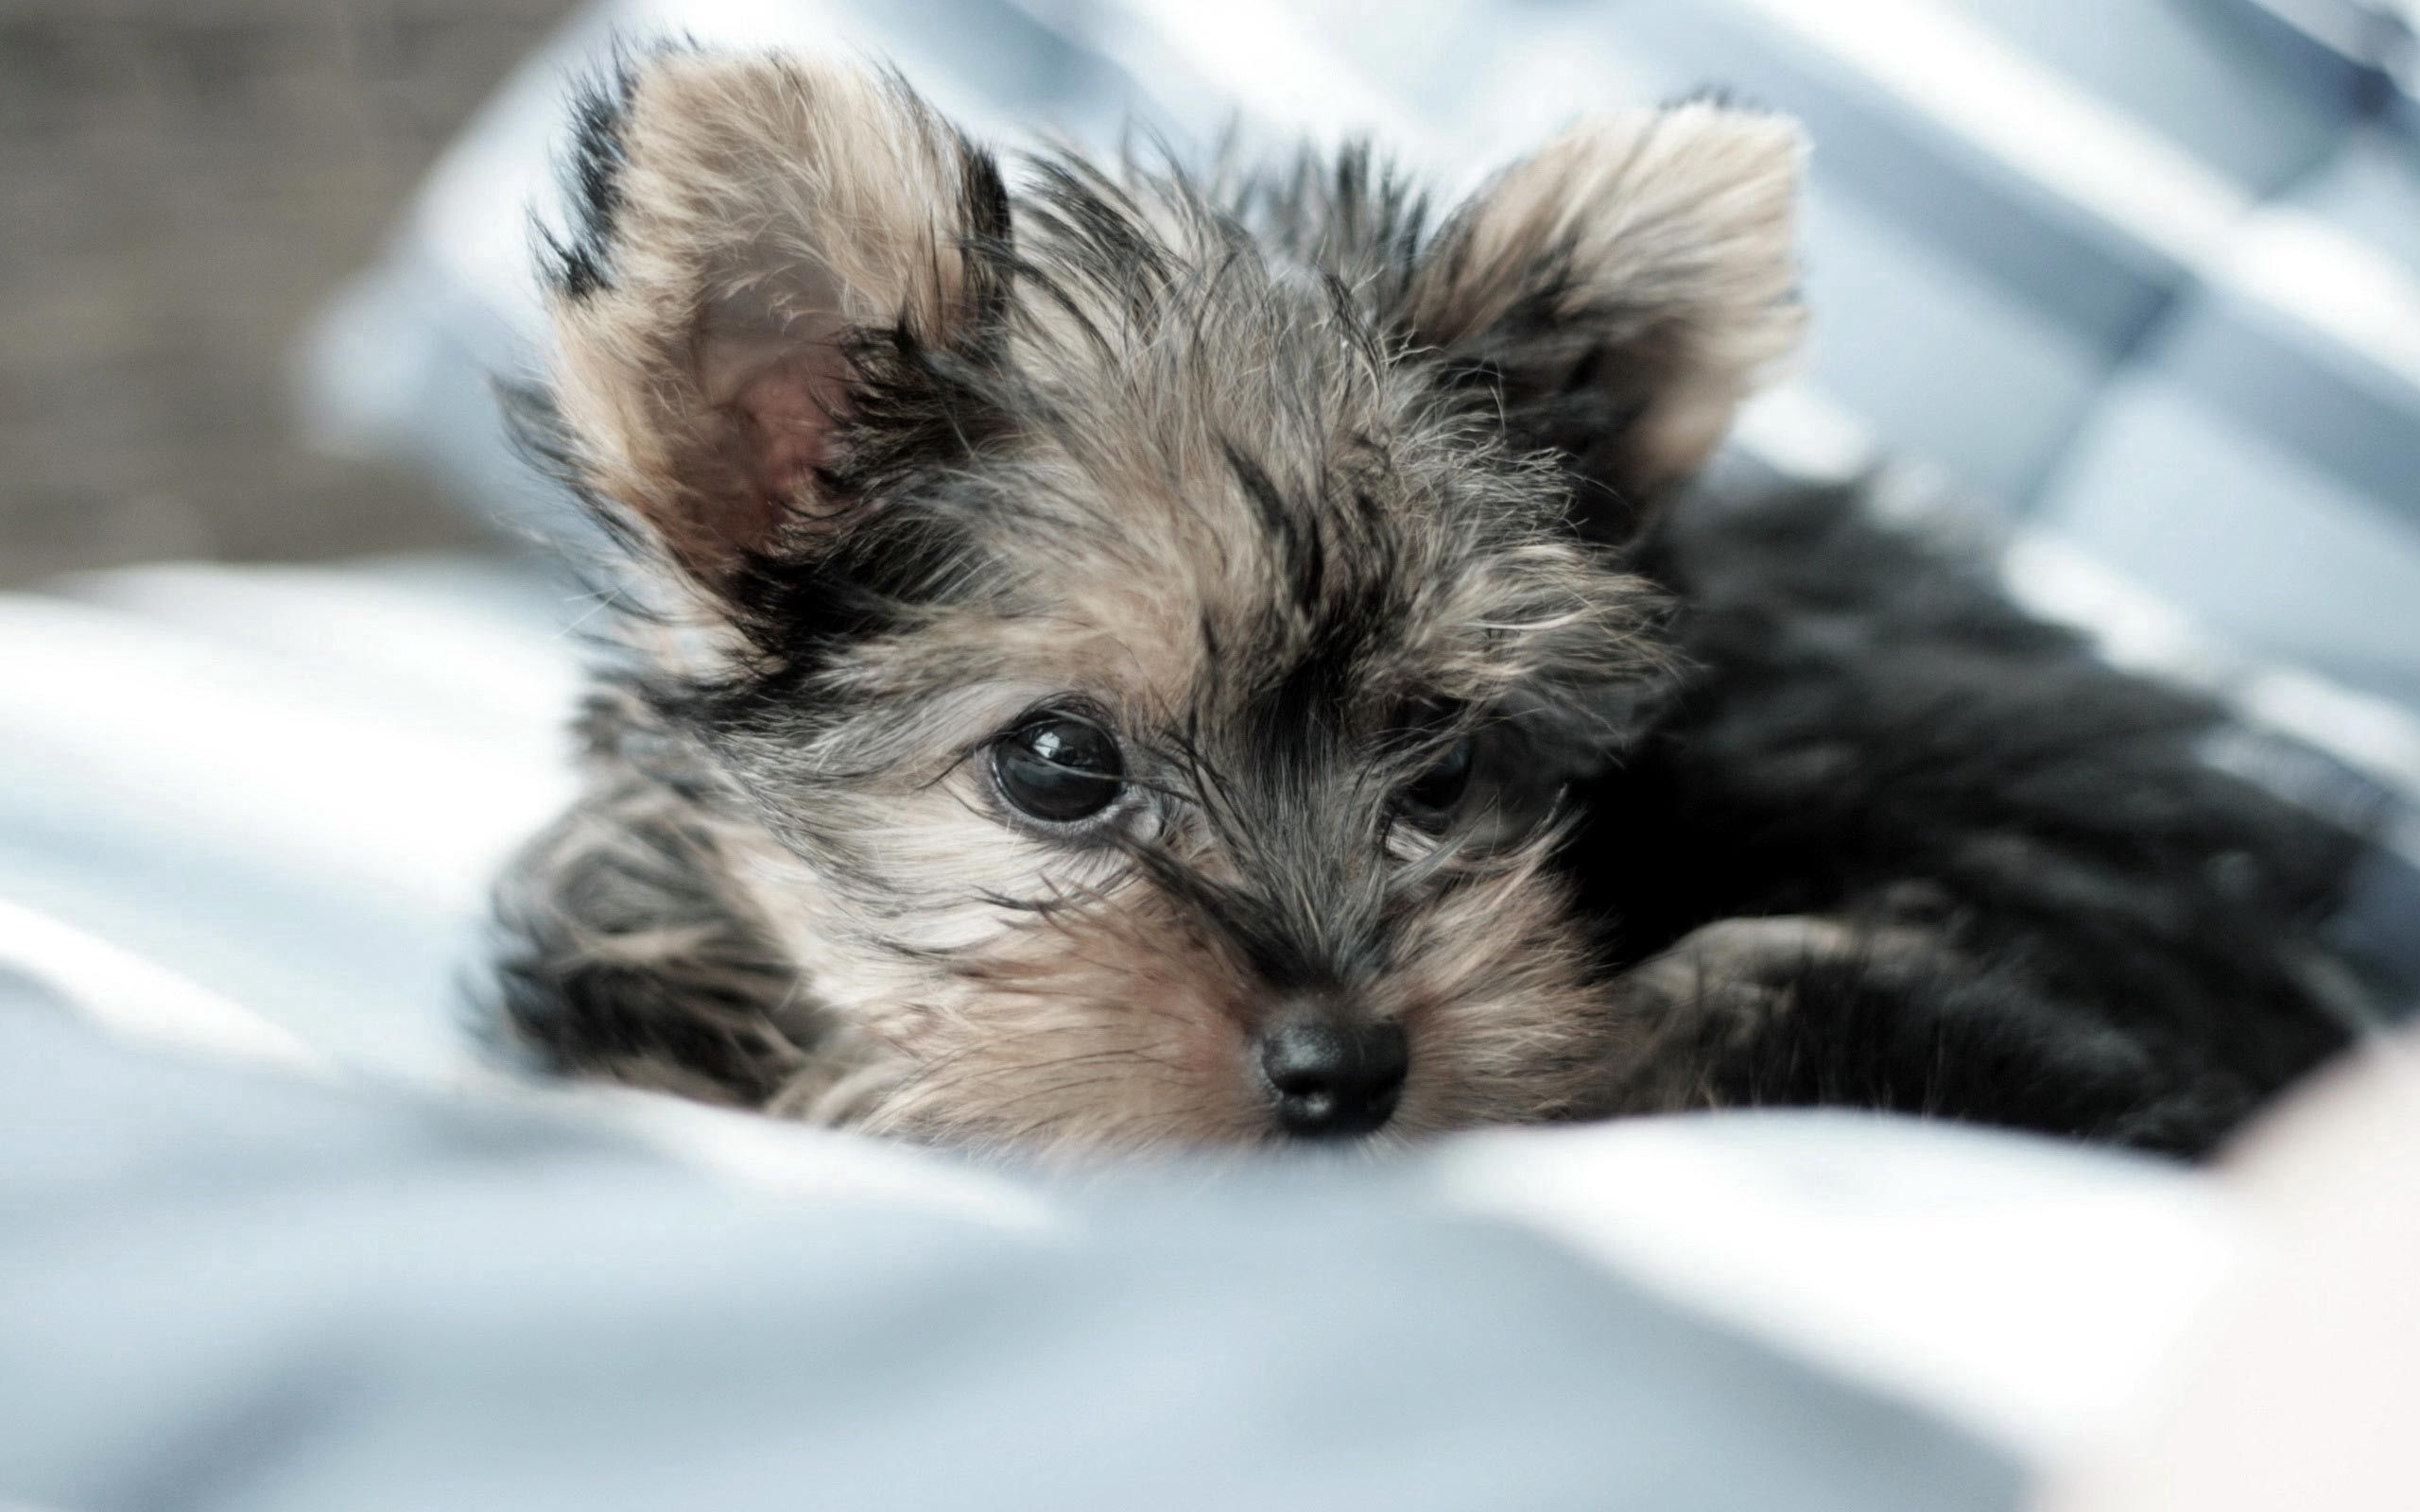 154805 download wallpaper Animals, Yorkshire Terrier, Dog, Puppy, To Lie Down, Lie, Fluffy screensavers and pictures for free